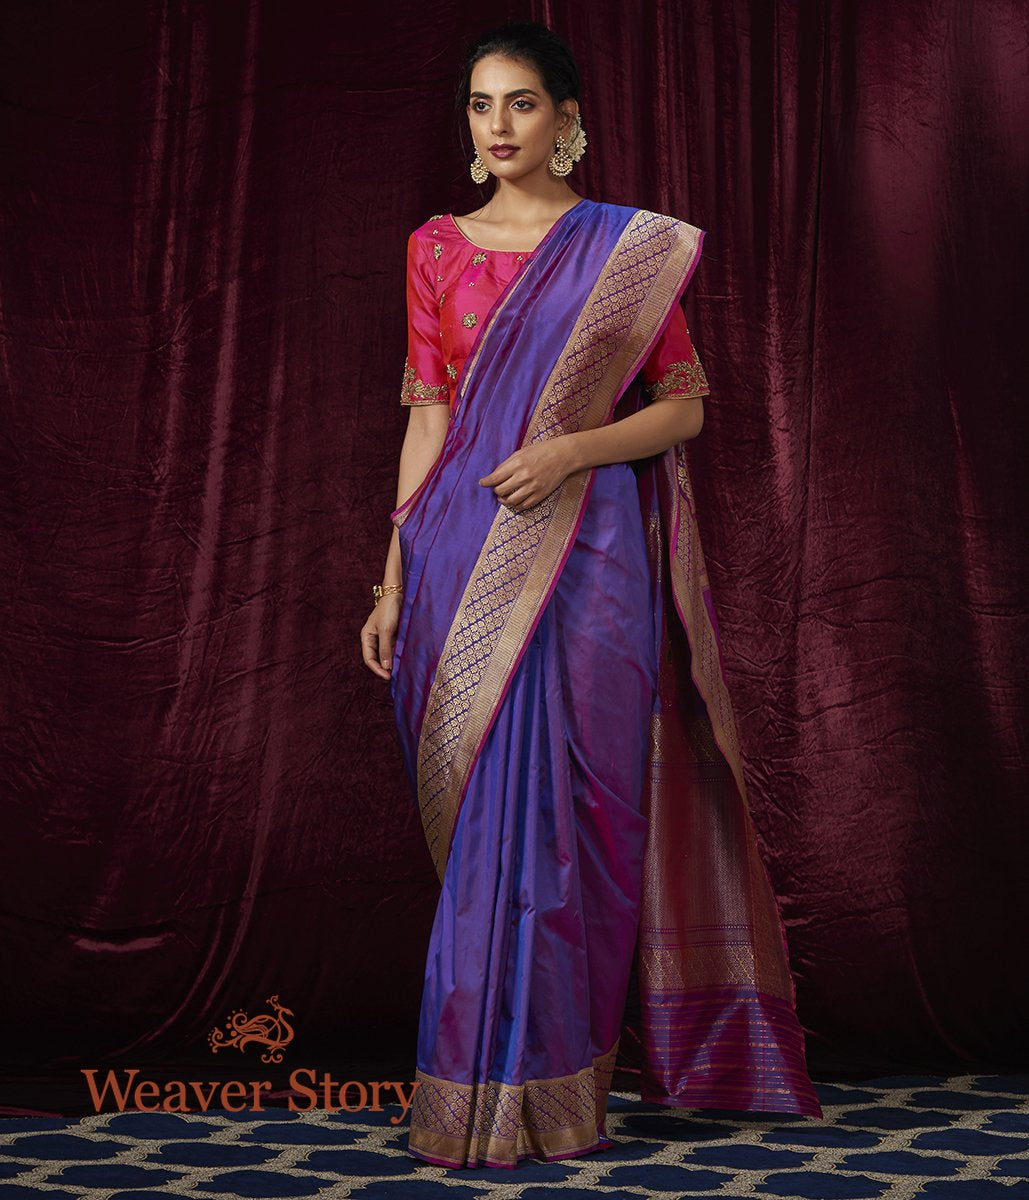 Handwoven Purple Katan Silk Banarasi Saree with Meenakari Pallu